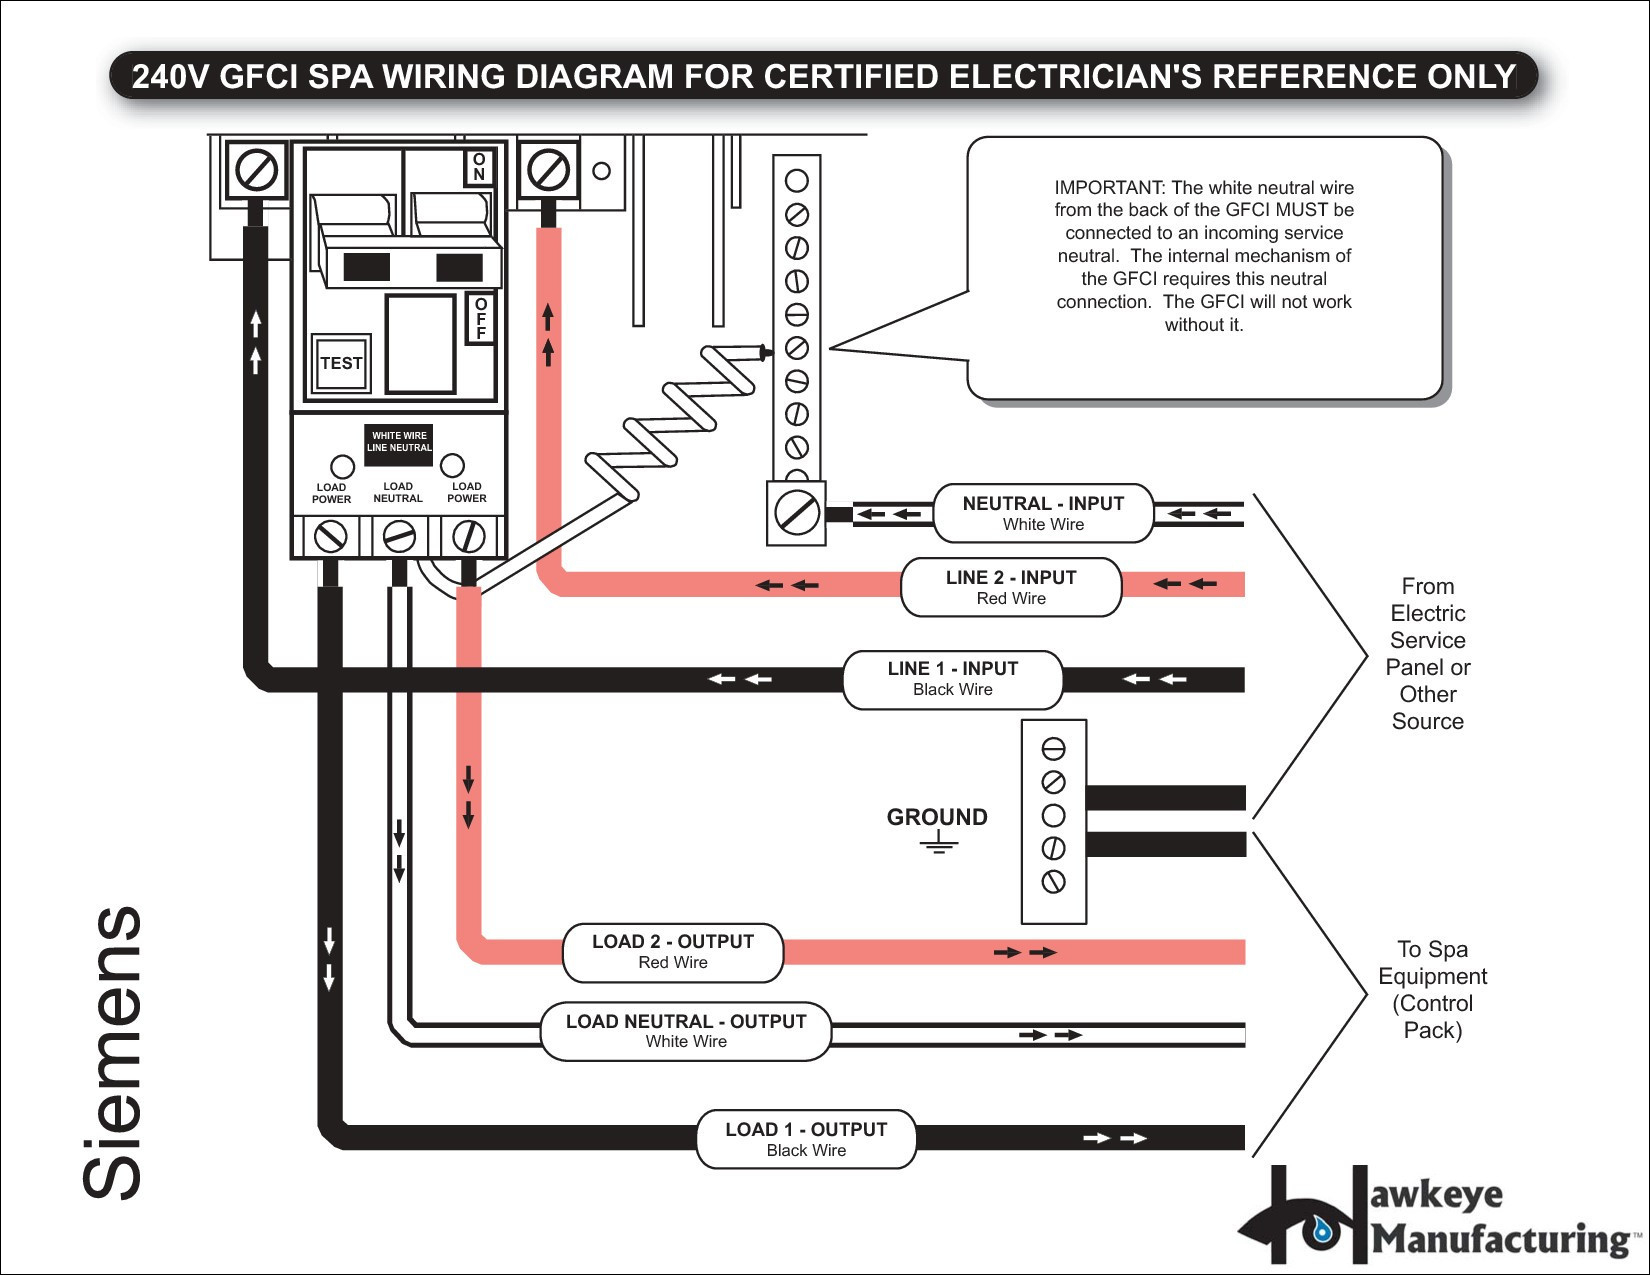 50 Amp Welder Plug Wiring Diagram from wholefoodsonabudget.com